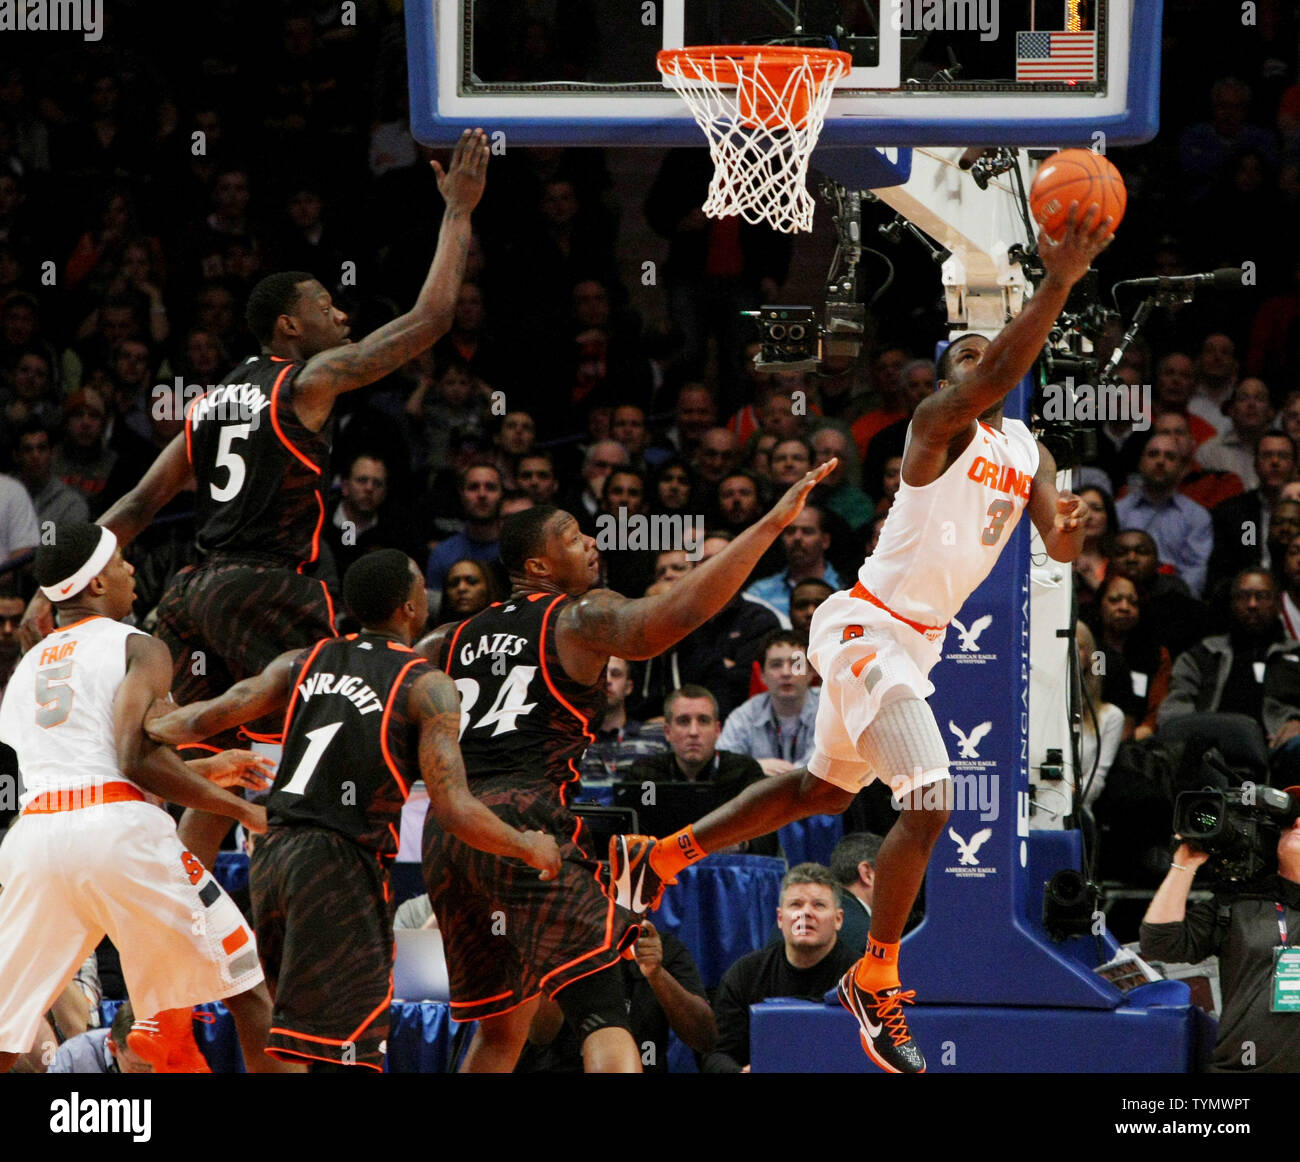 Syracuse S Dion Waiters Goes To Score As Justin Jackson 5